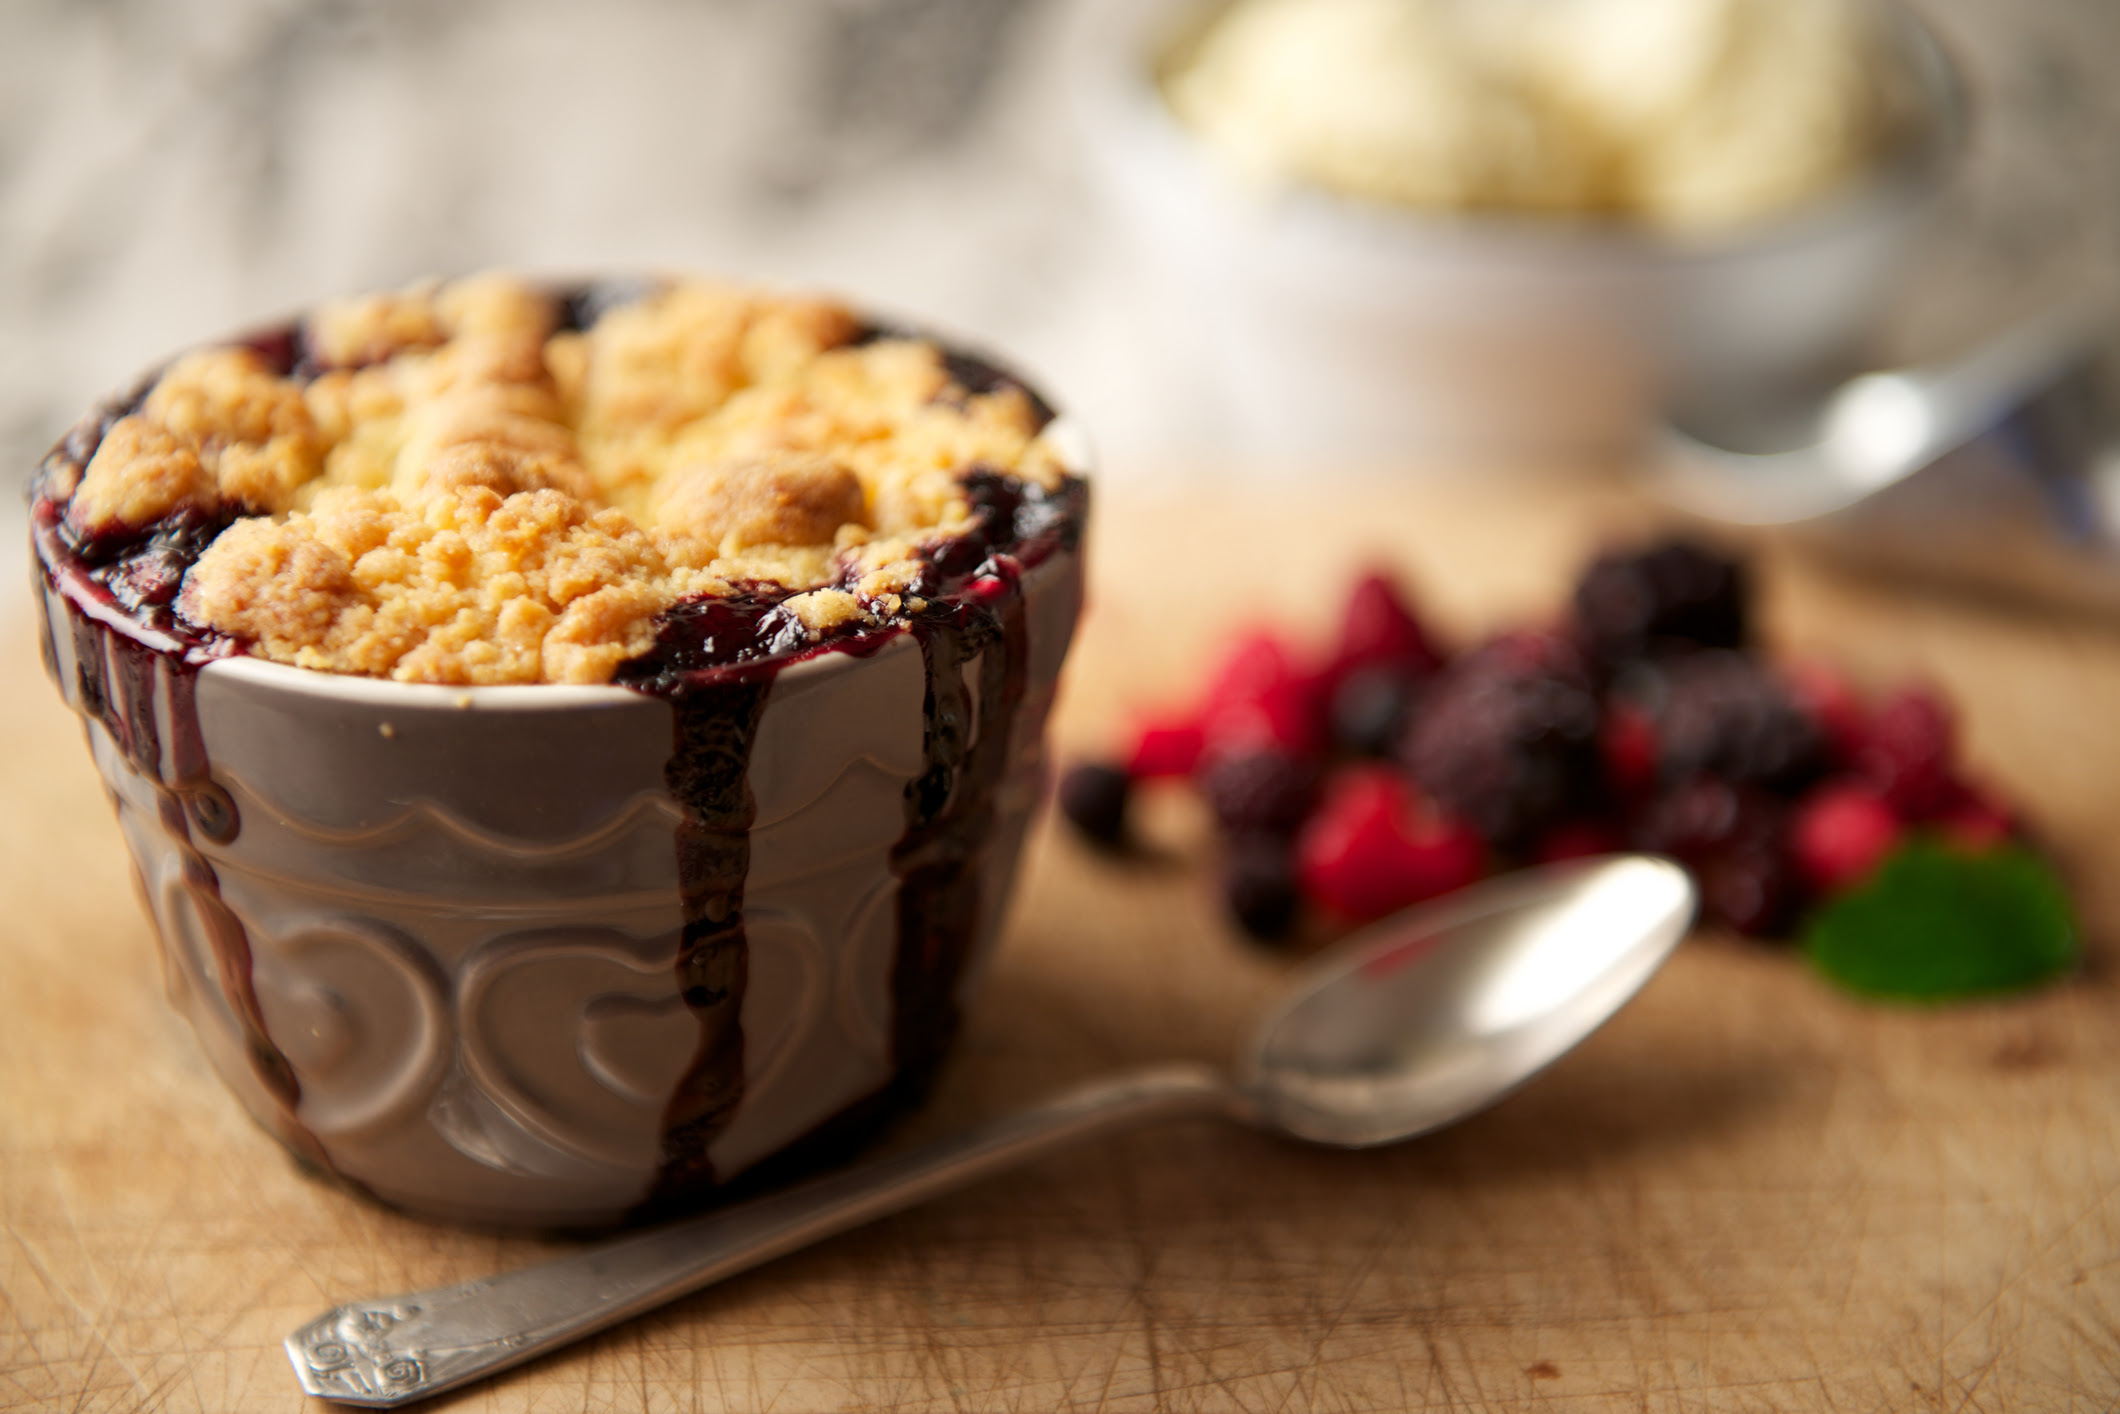 Generic photo of a bowl of fruit crumble (Thinkstock/PA)